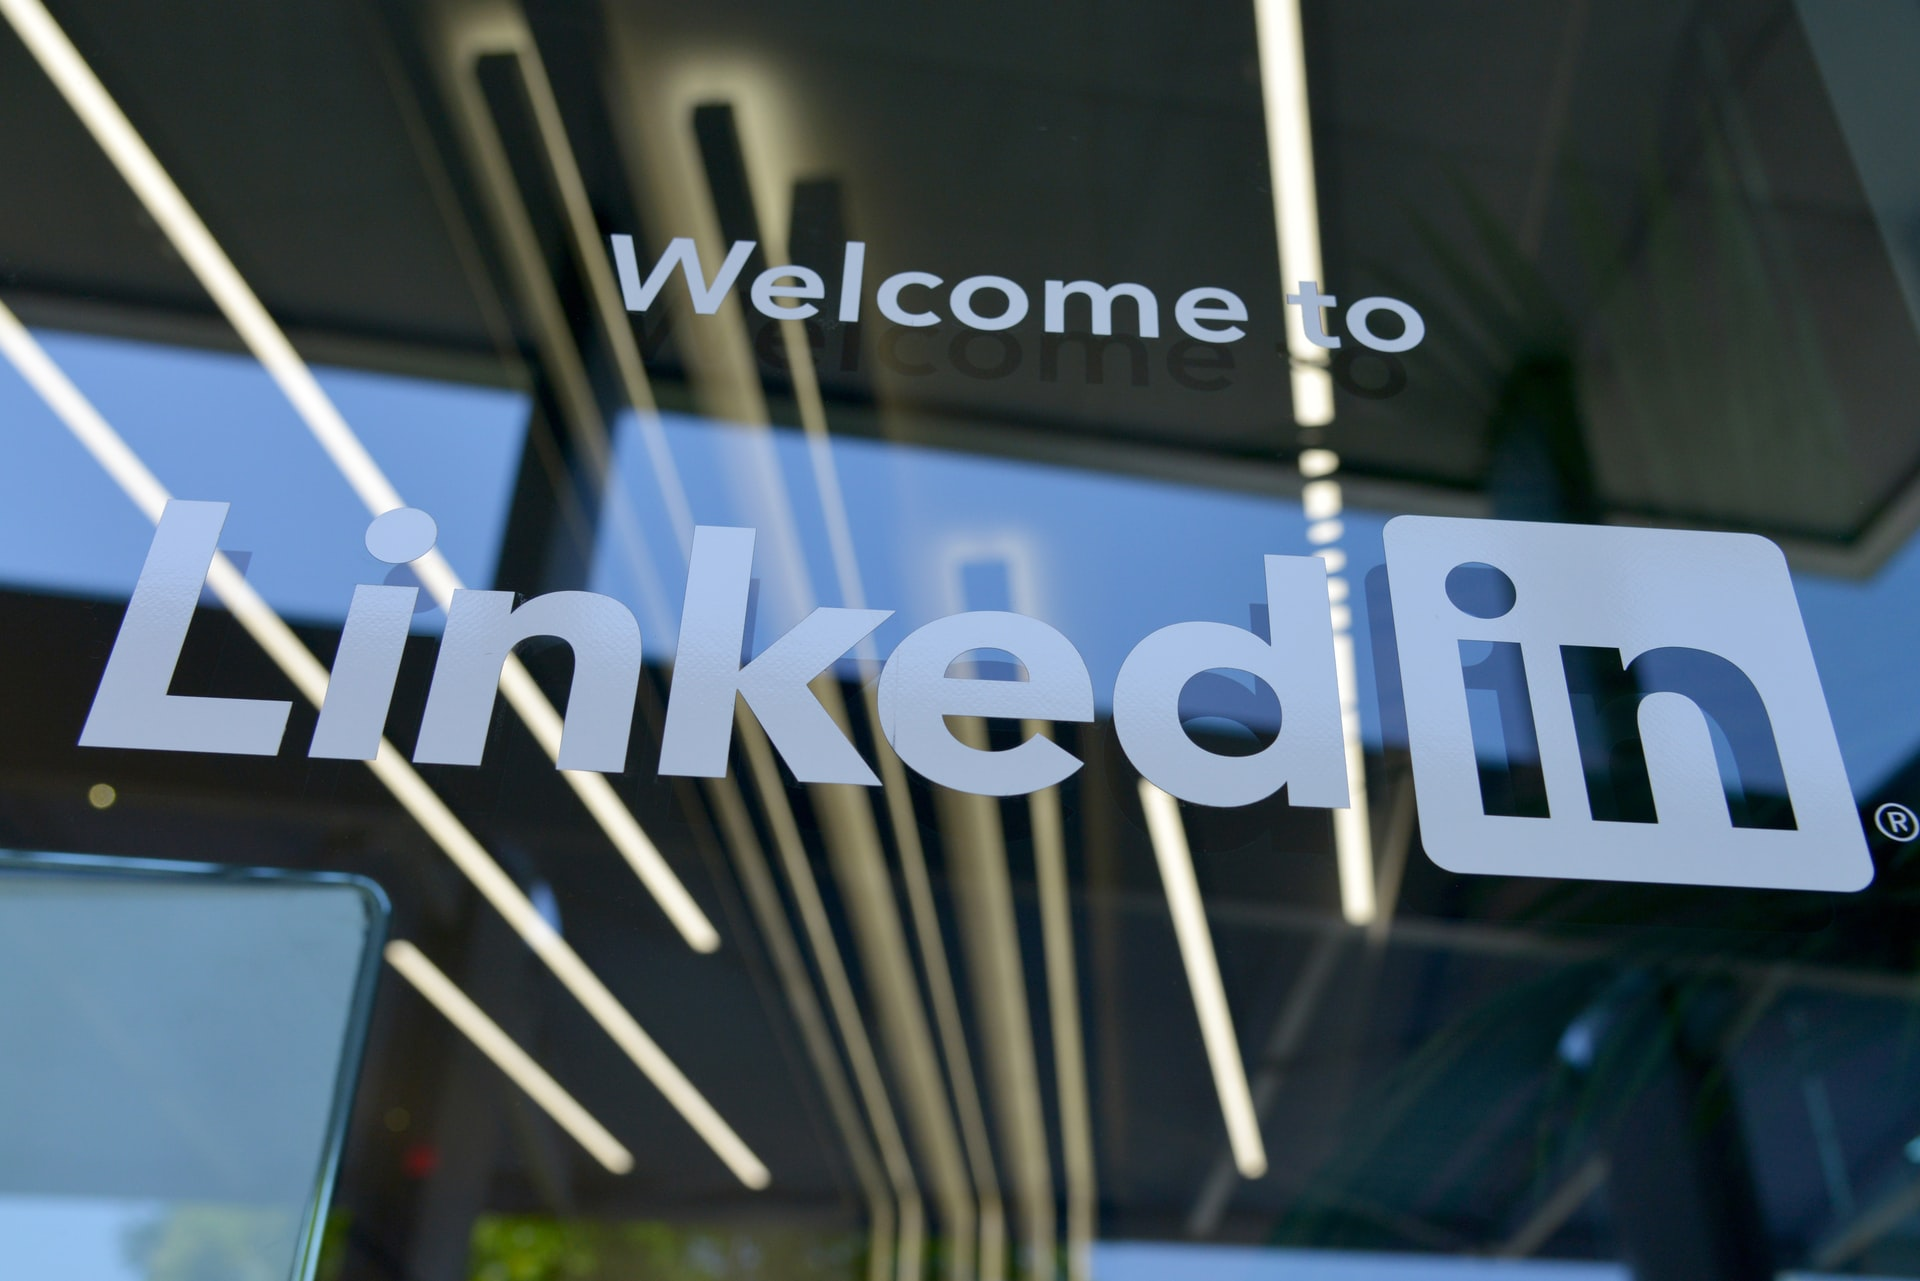 Welcome to LinkedIn, recita un'insegna su vetro.